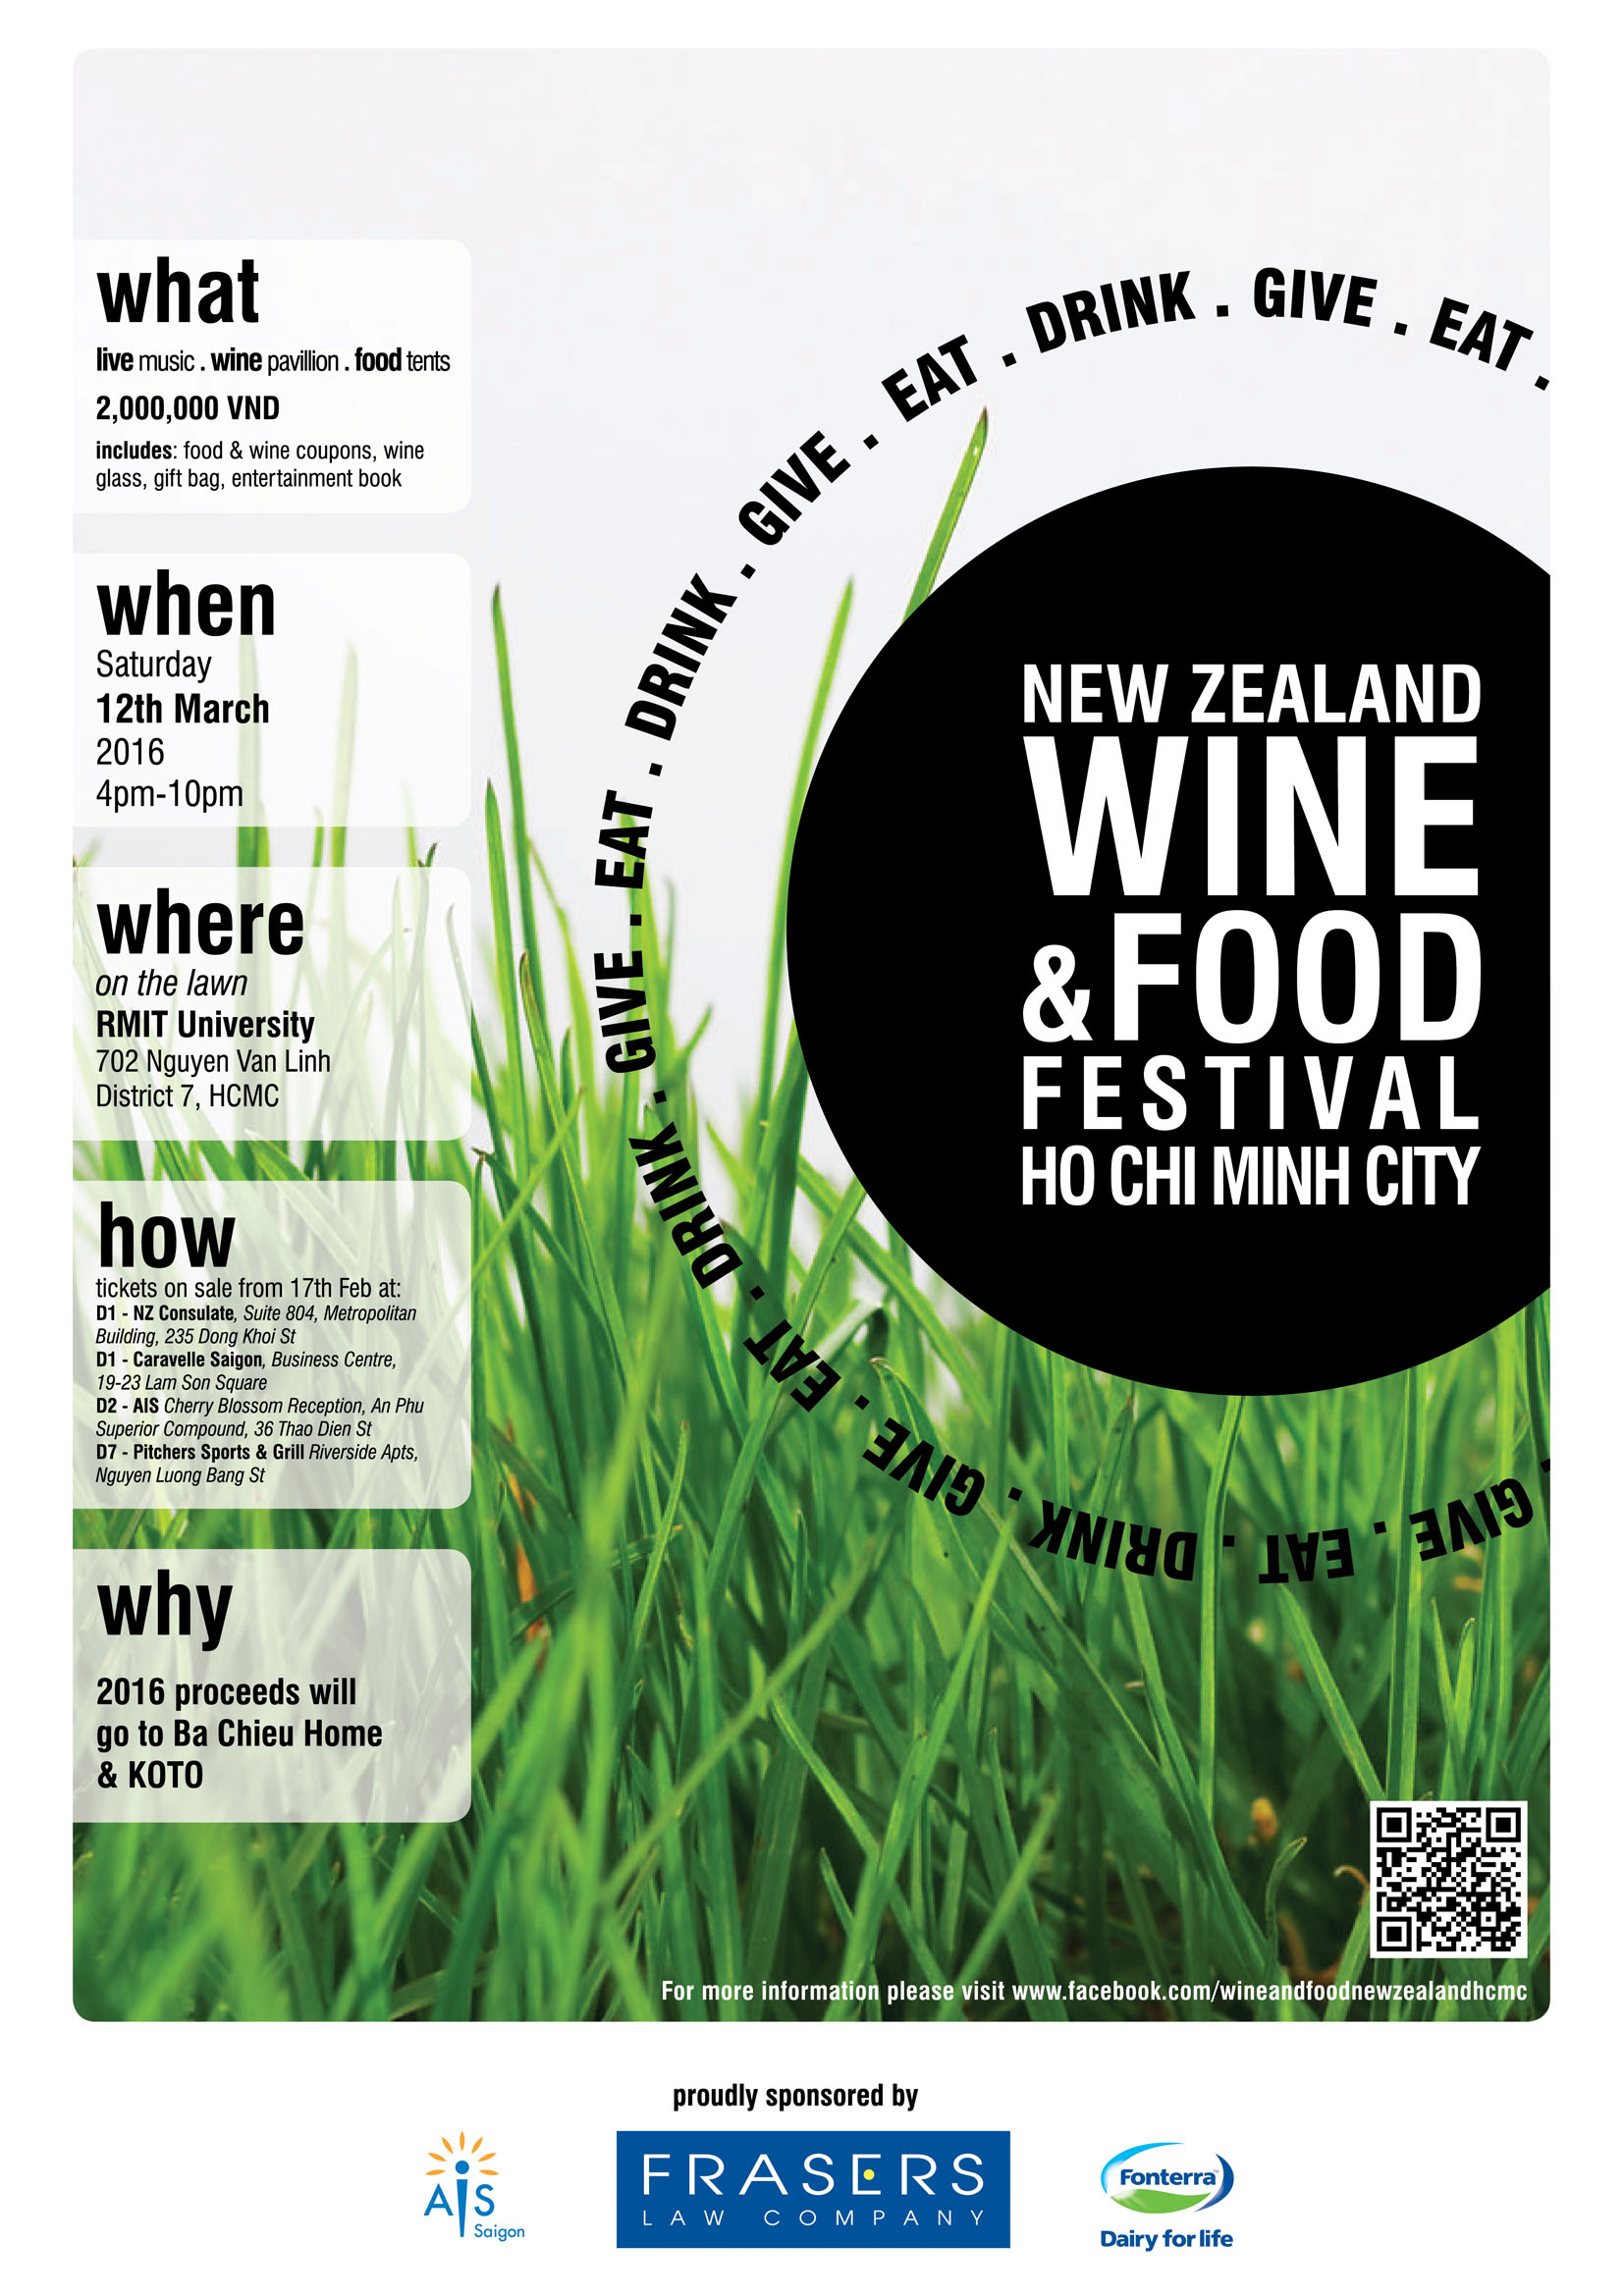 New Zealand Wine & Food Festival HCMC - Oi